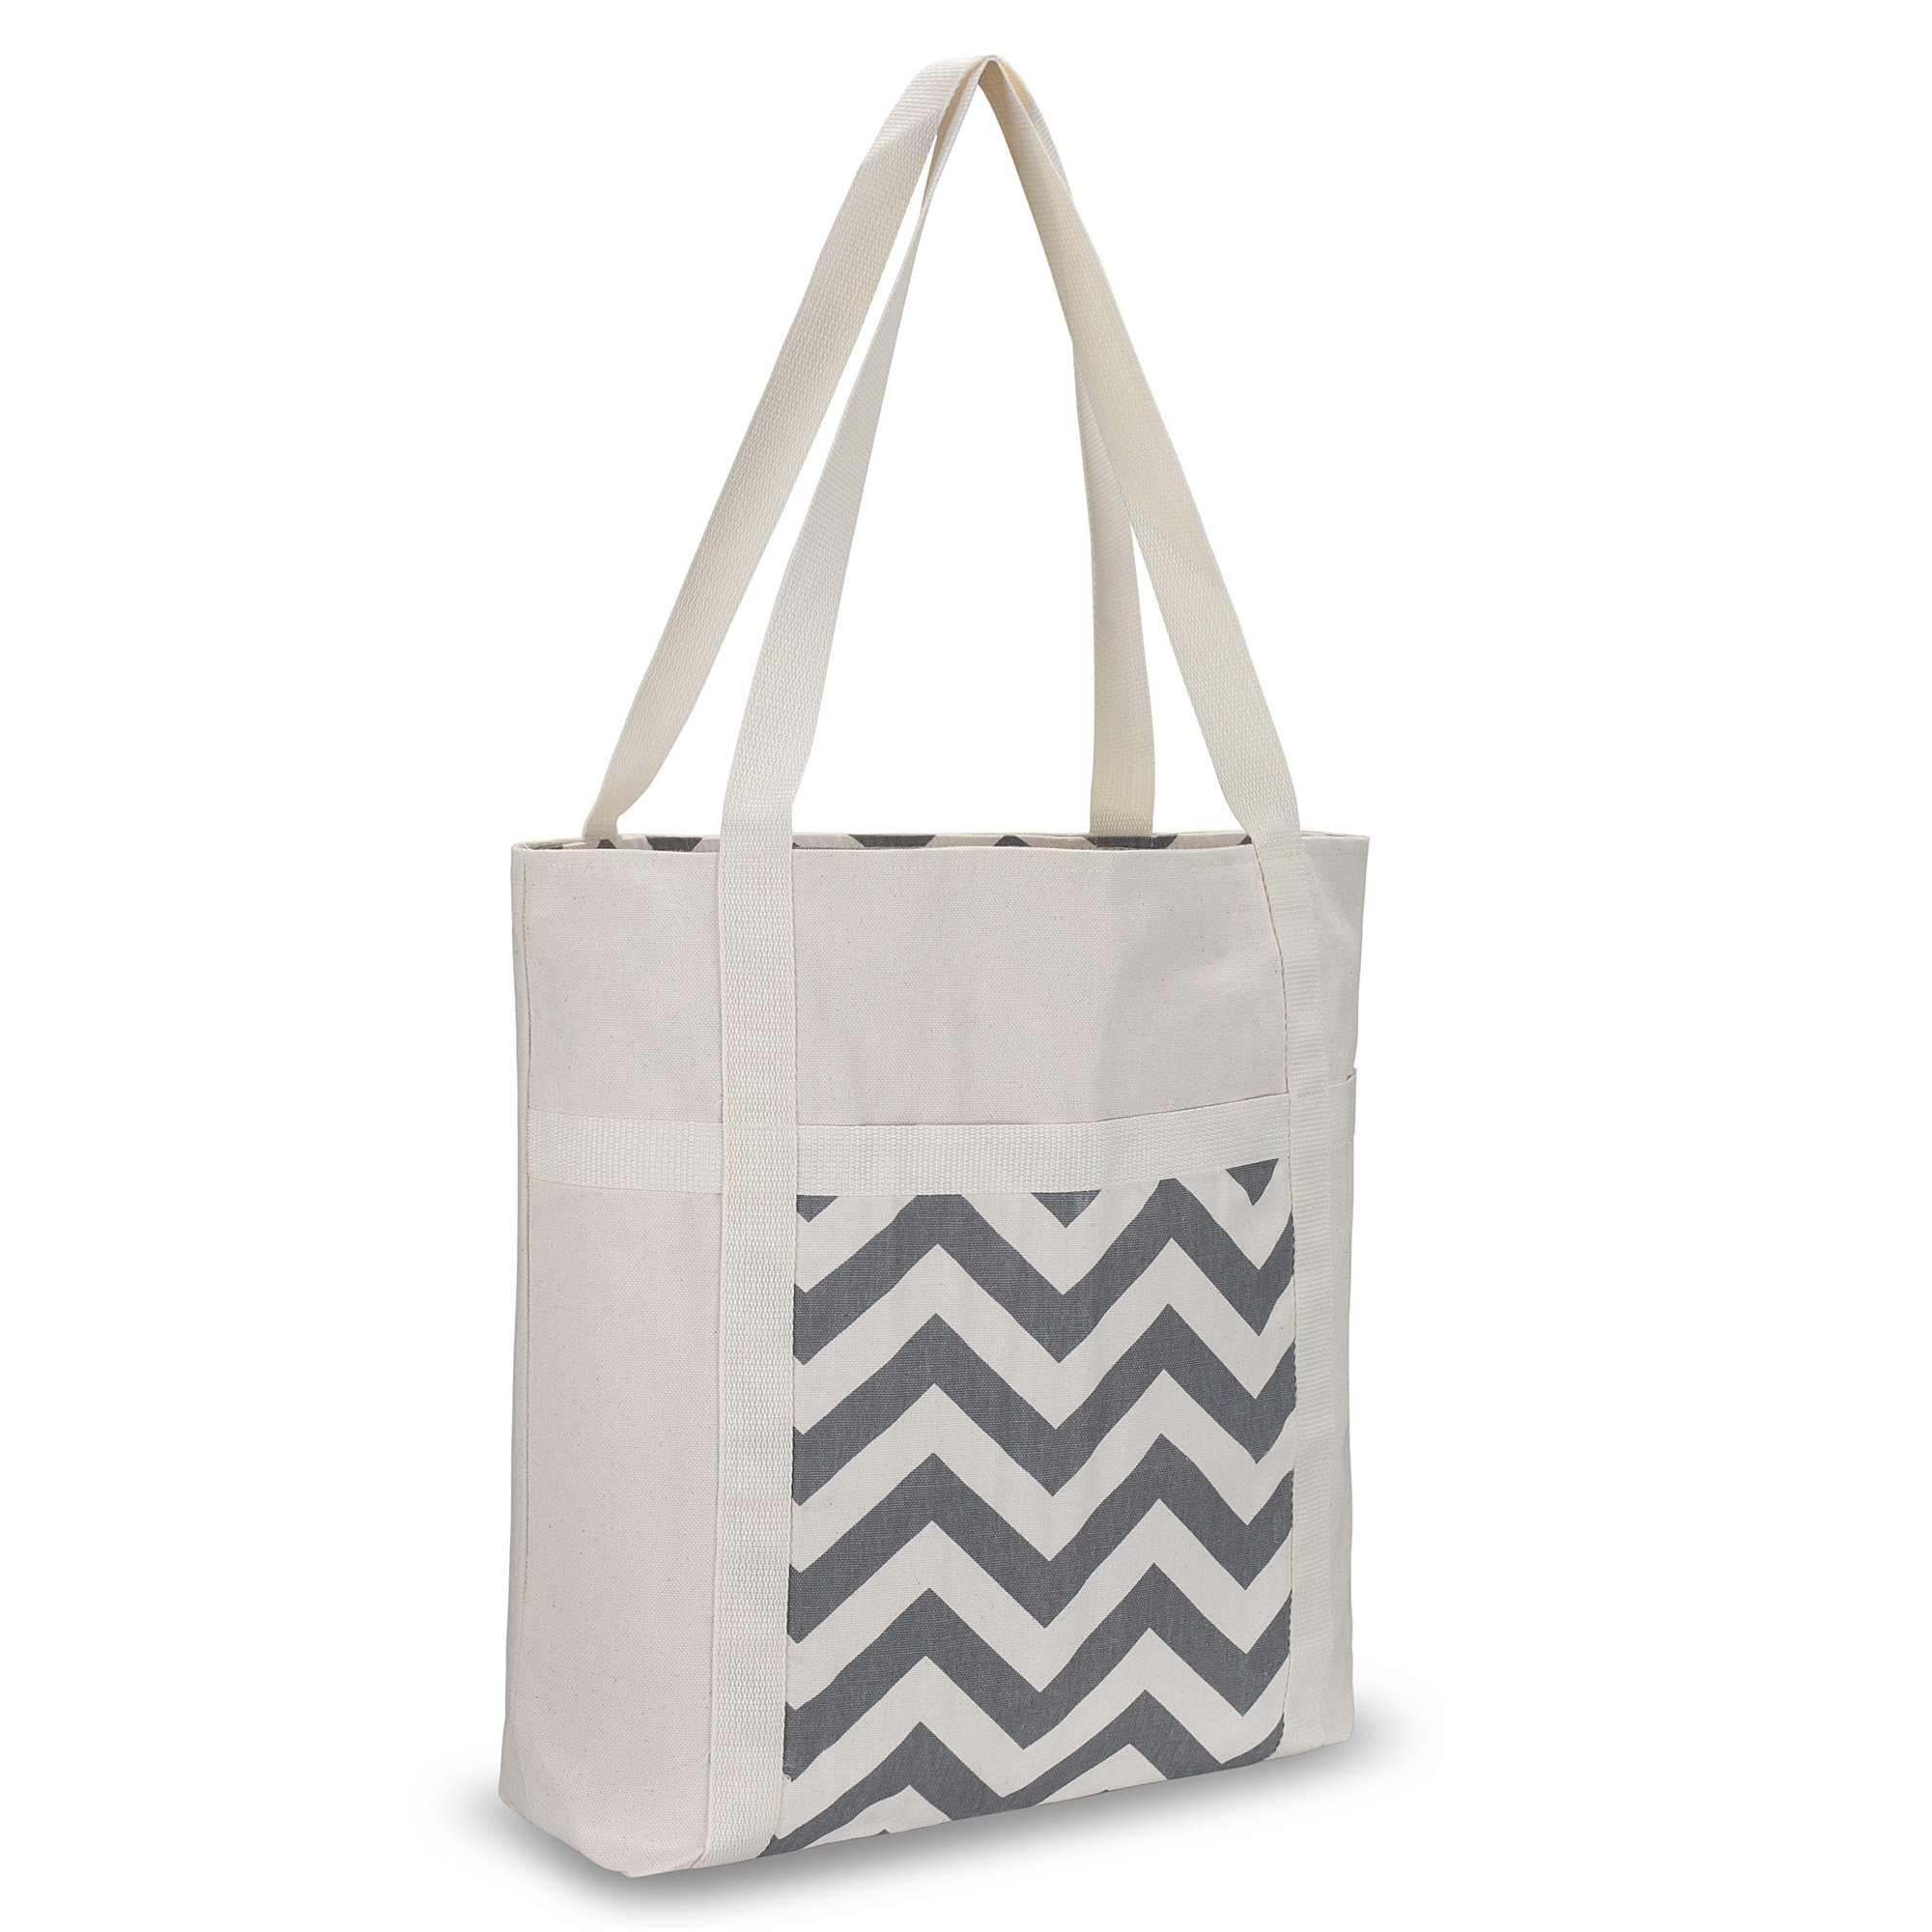 Kuzy - Gray Chevron Zig-Zag Beach Bag Handmade from Heavy Canvas Cotton (Size 17x15-inch) for MacBook and Laptop, Book Travel Bags - Grey